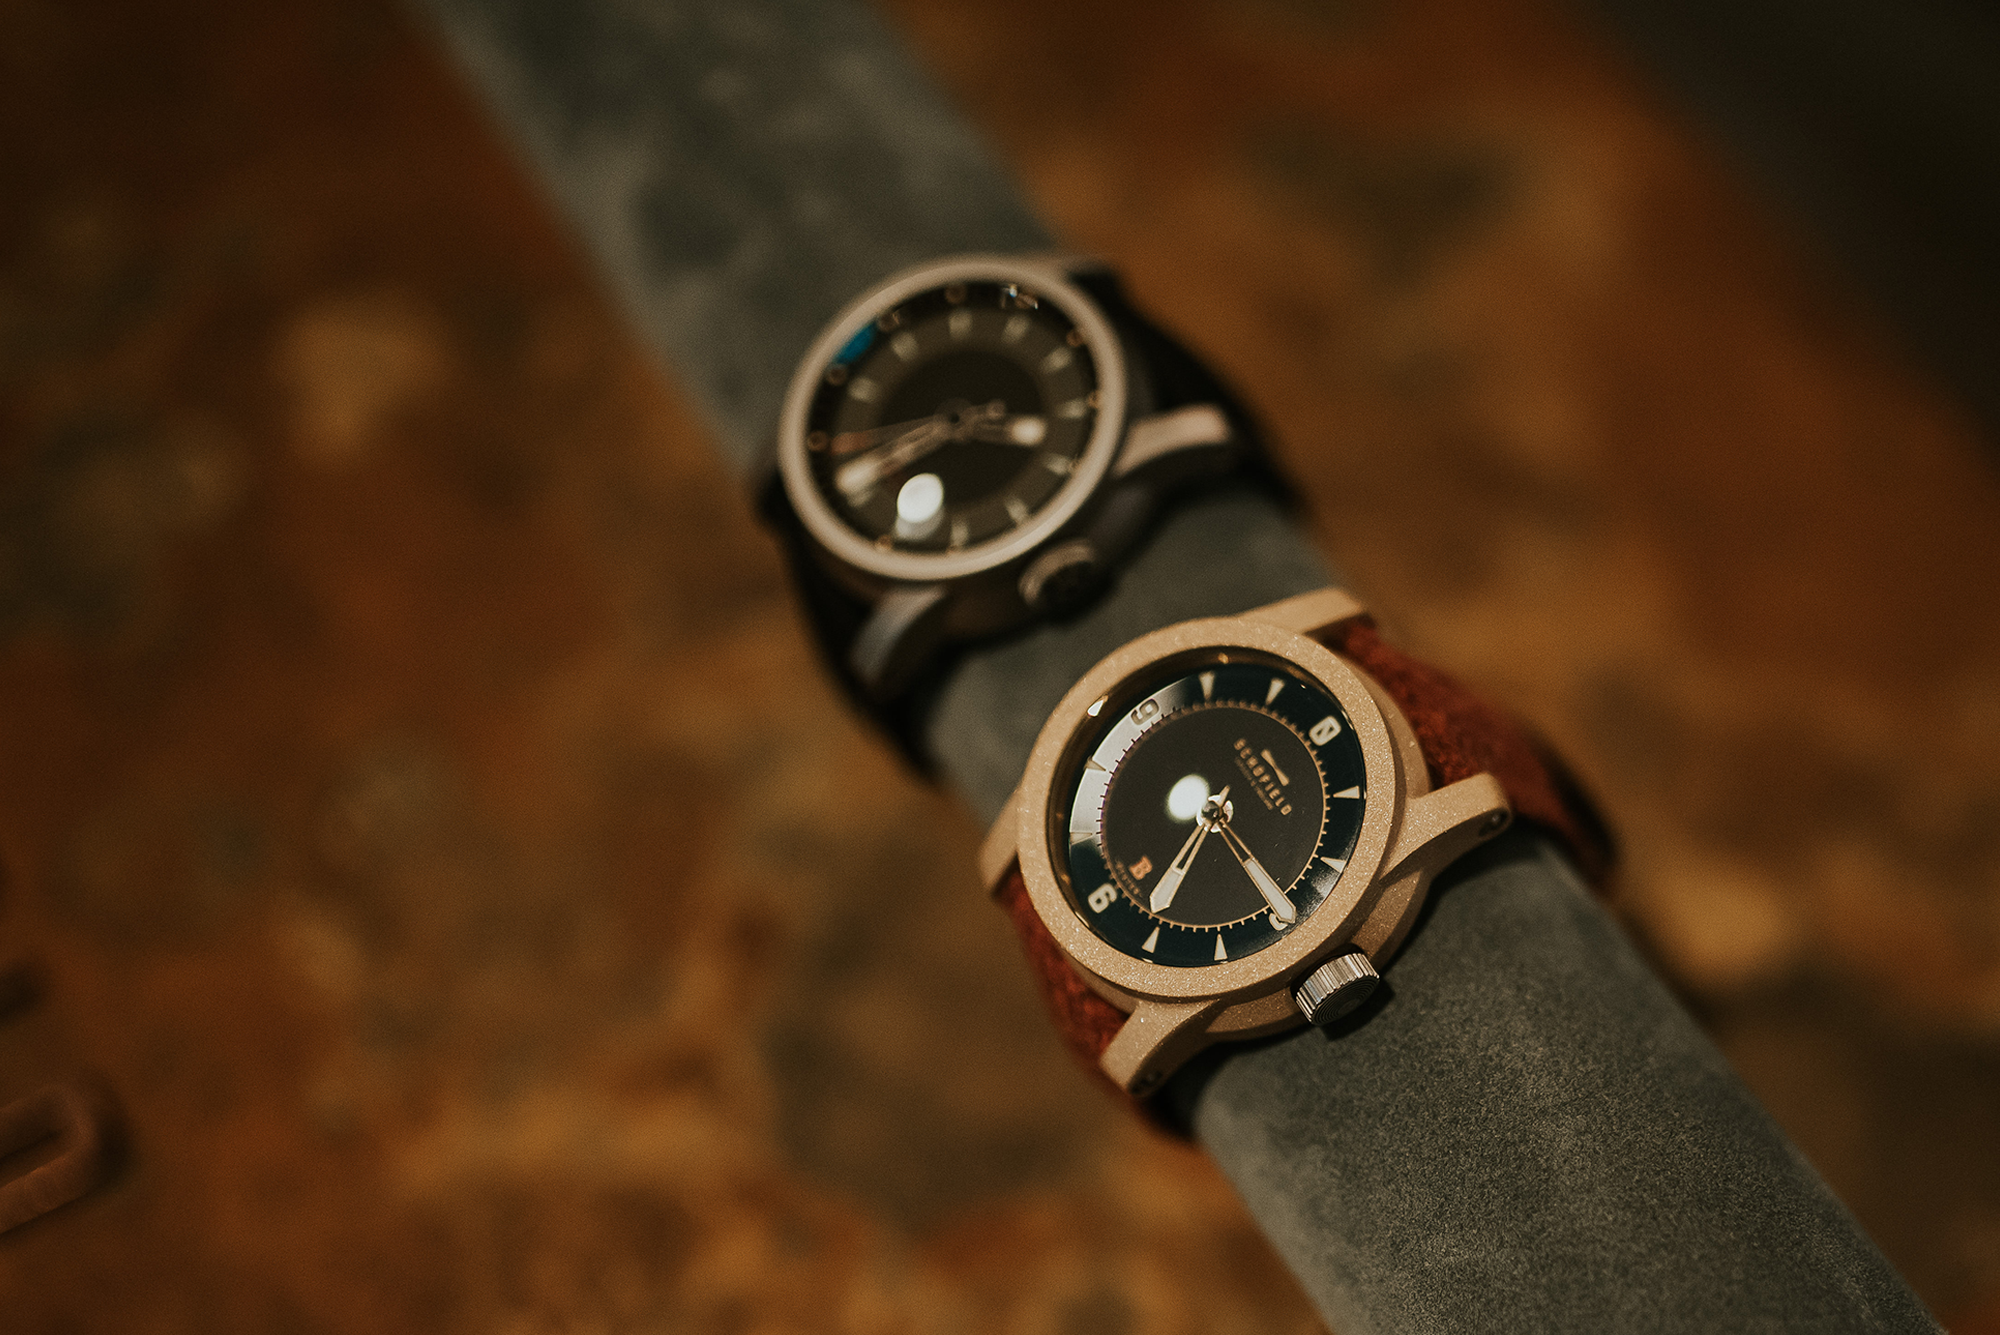 SKOLORR WATCHES - MADE IN BRITIAN COLLECTIVE